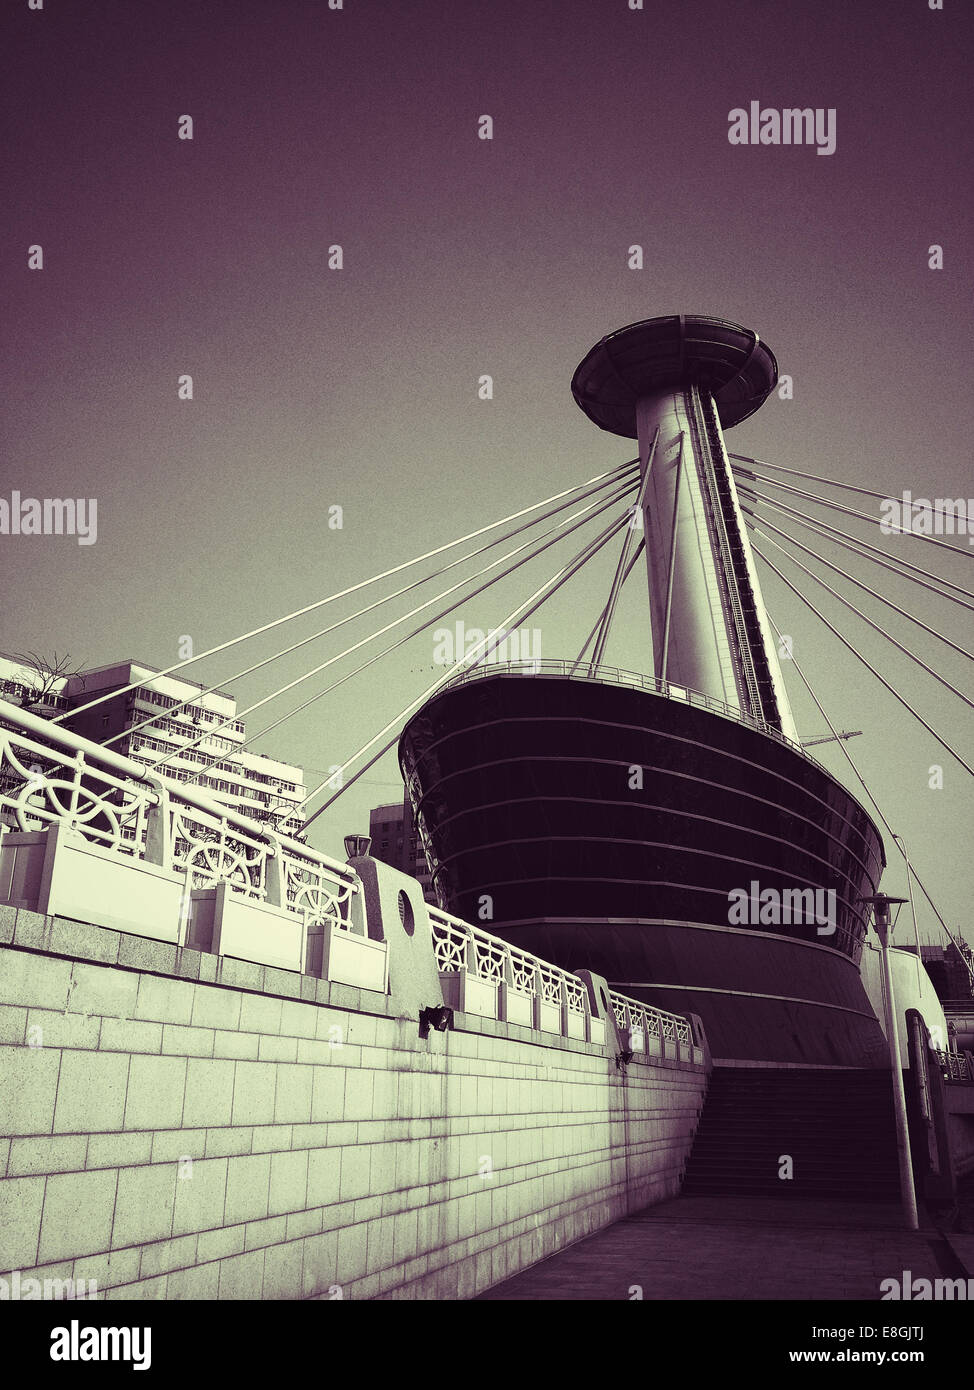 China, Tianjin, View of modern building - Stock Image